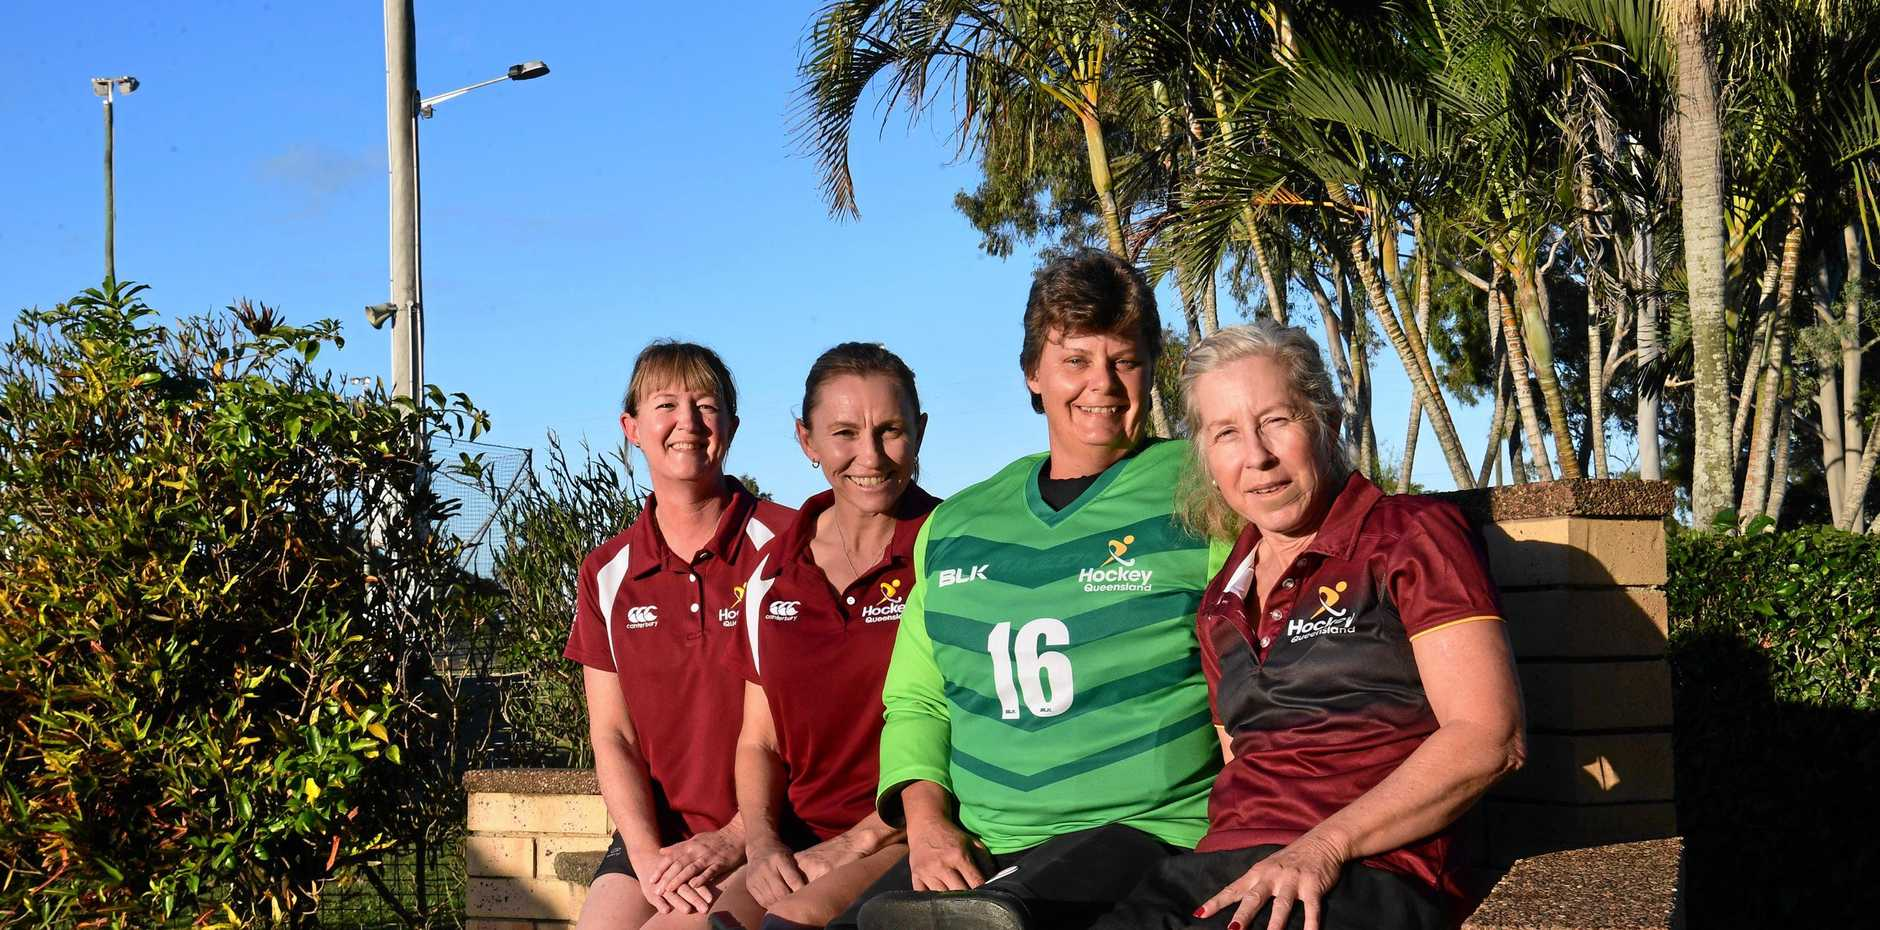 OUR HOCKEY HITS: Bundaberg's Anglea Asnicar, Susan Kendall, Chris Polhmann and Maree Beaumont have been picked for Queensland after doing well at the recent Masters titles for regions. Deborah Burchard, not pictured, has also been selected.